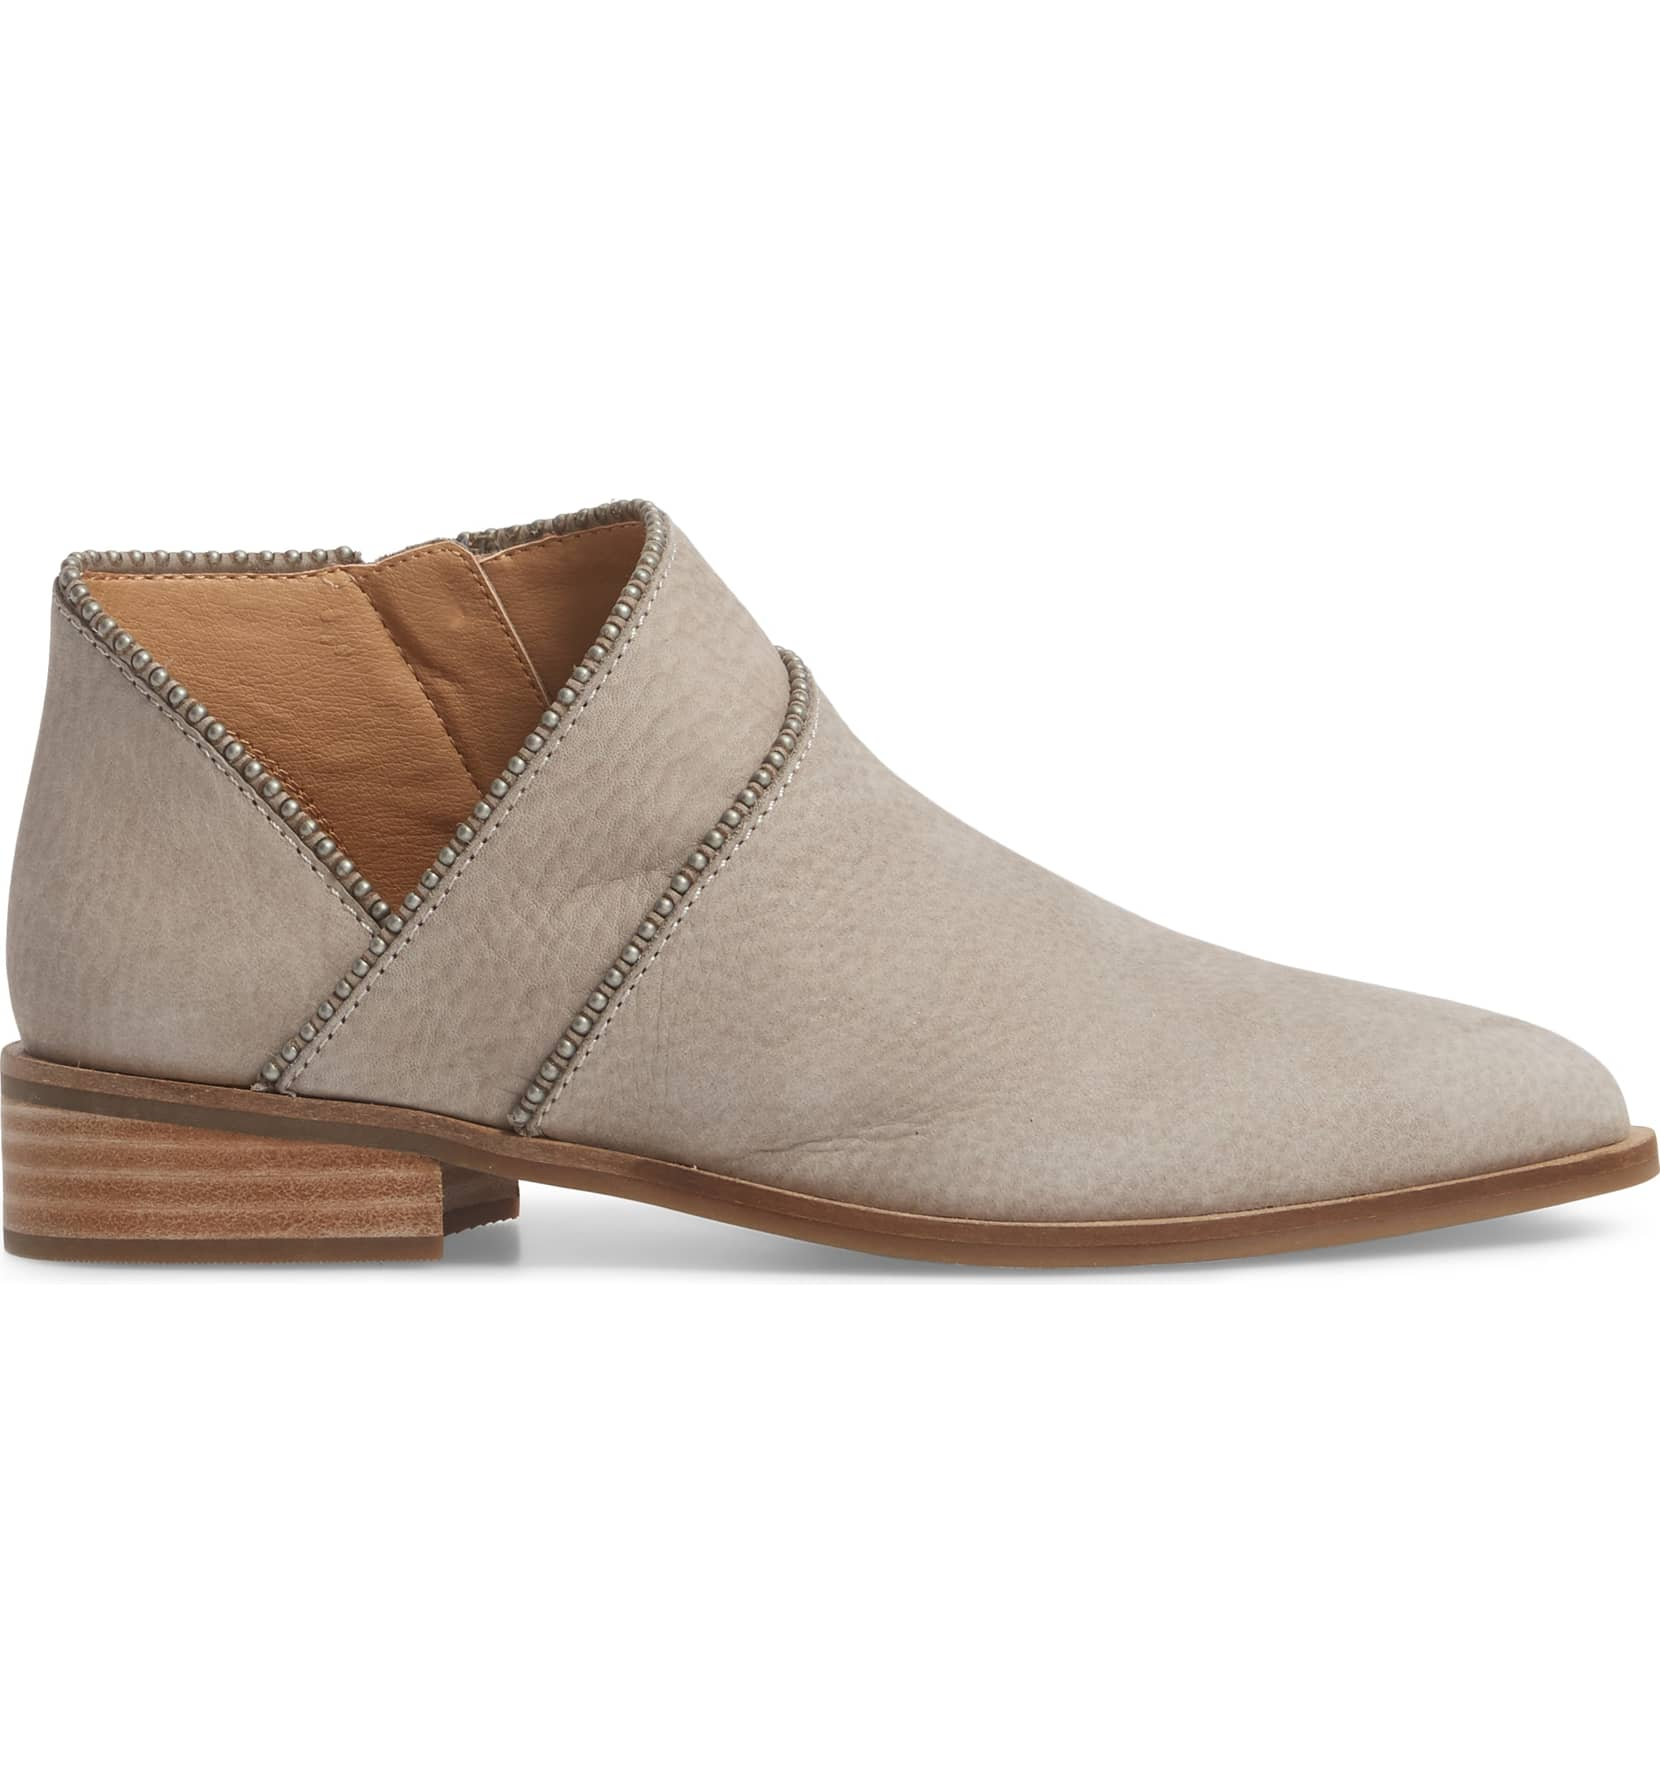 Lucky-Brand-Perrma-Curved-Topline-Pinpoint-Studed-Moto-Edge-Bootie thumbnail 10